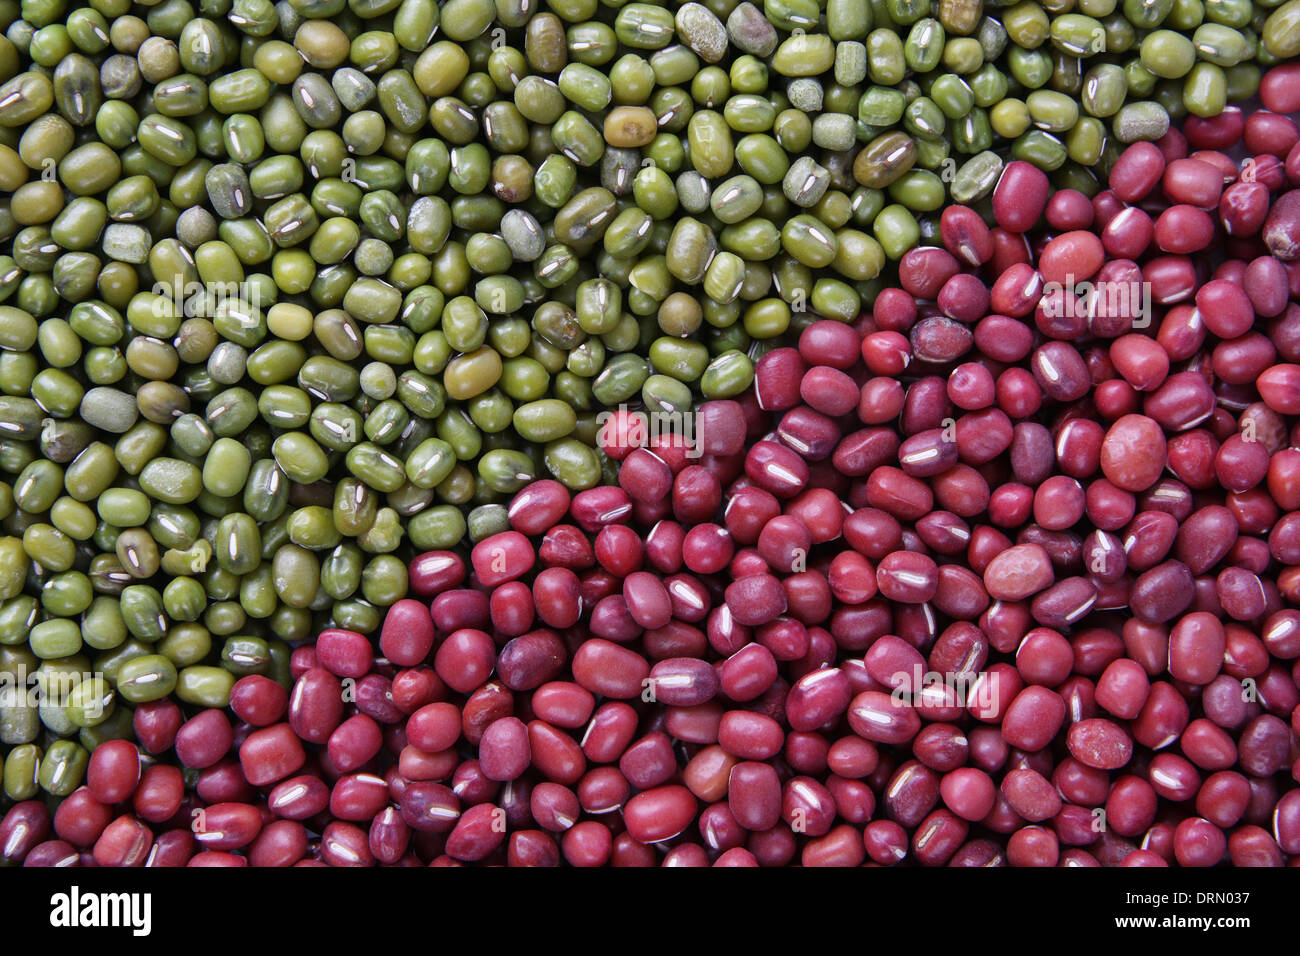 mung and red beans - Stock Image